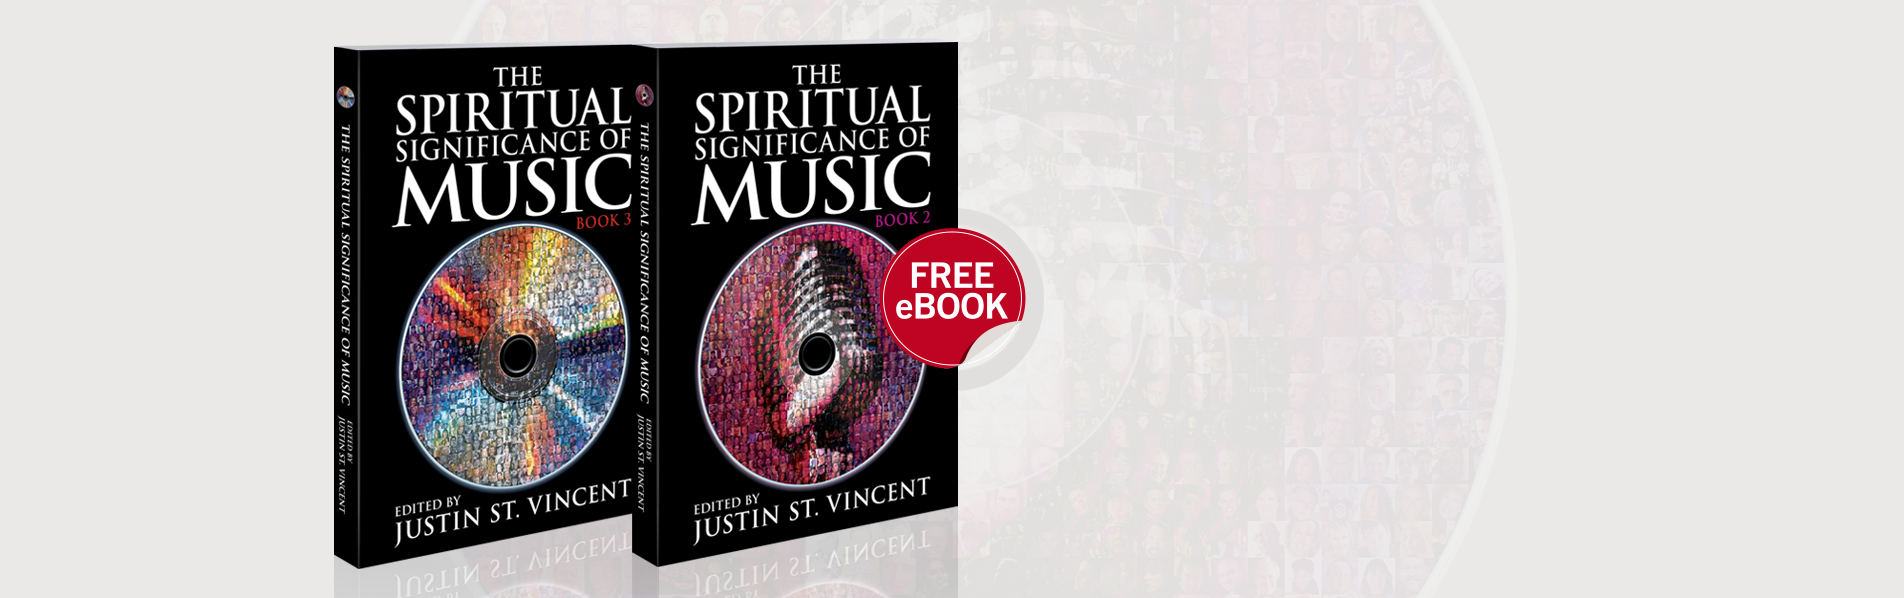 THE SPIRITUAL SIGNIFICANCE OF MUSIC: BOOKS 2 & 3